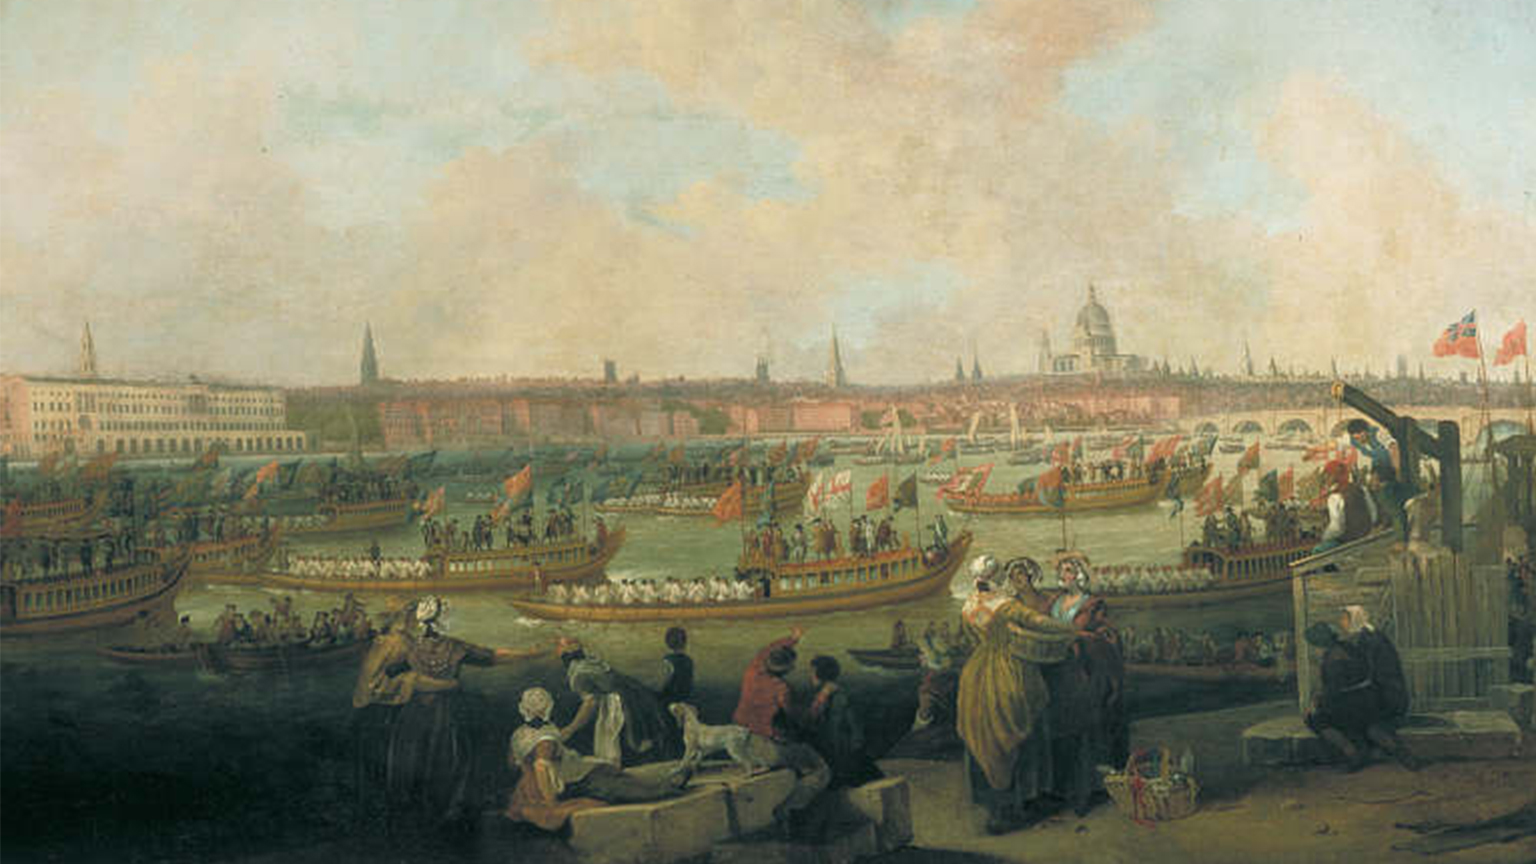 Francis Wheatley and Richard Paton, The Lord Mayor's Procession by Water to Westminster, November 9 789